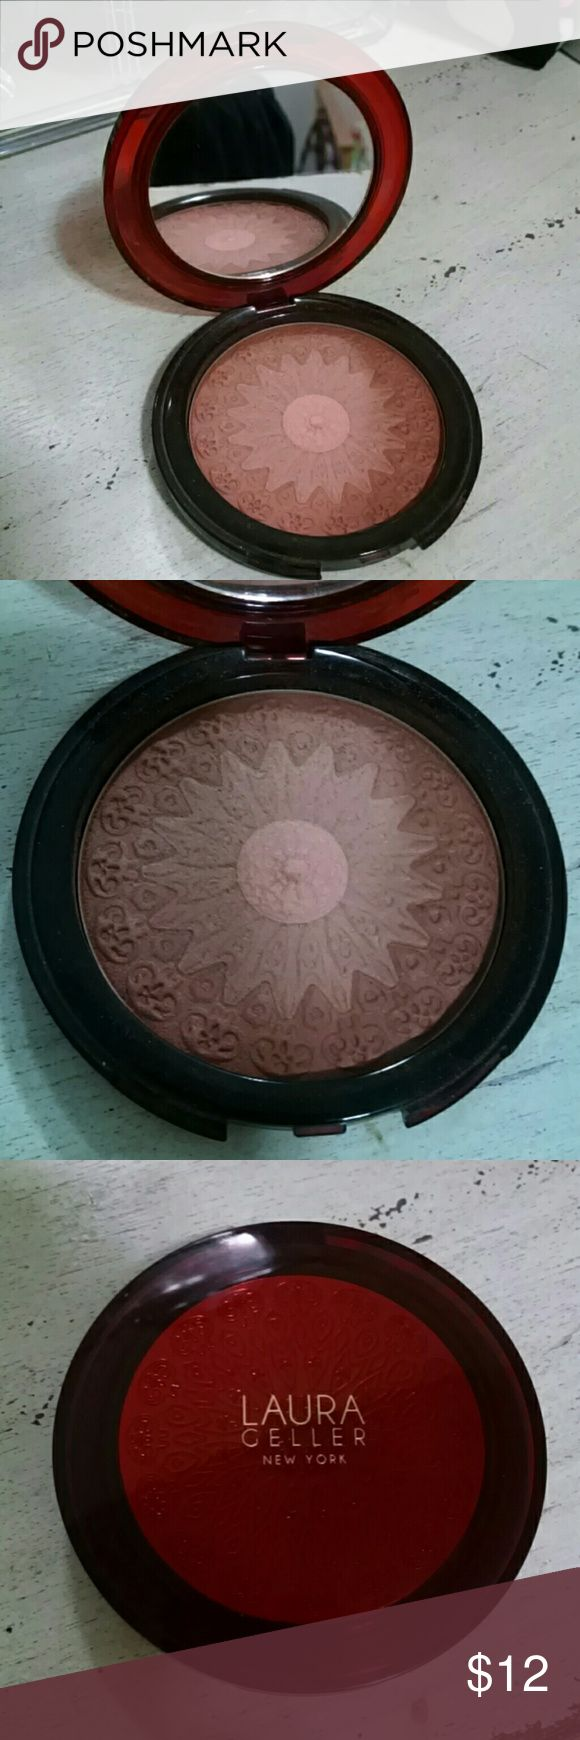 Laura Geller Moroccan Bronzer From the Laura Geller Mediterranean Set, this is a beautiful baked bronzer. It has a shimmer so it can also be used as a highlighter. Mirror compact. Barely used, I'm stuck on my Mac bronzers lol. No box.100% AUTHENTIC!!! Bundle and save on shipping costs!!! Laura Geller  Makeup Bronzer